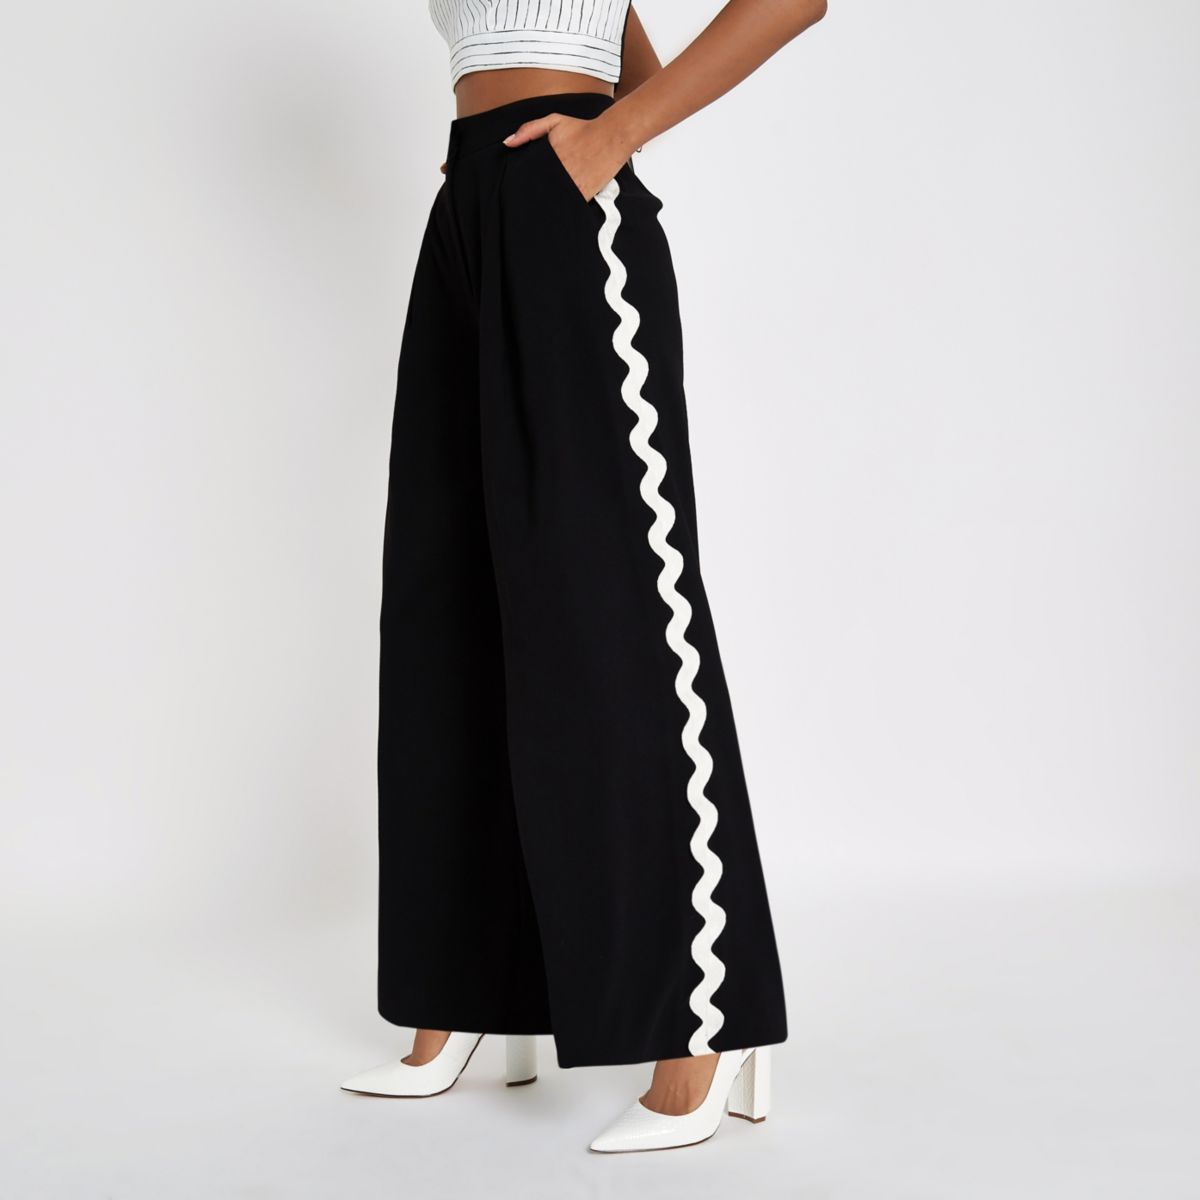 Black side trim wide leg pants